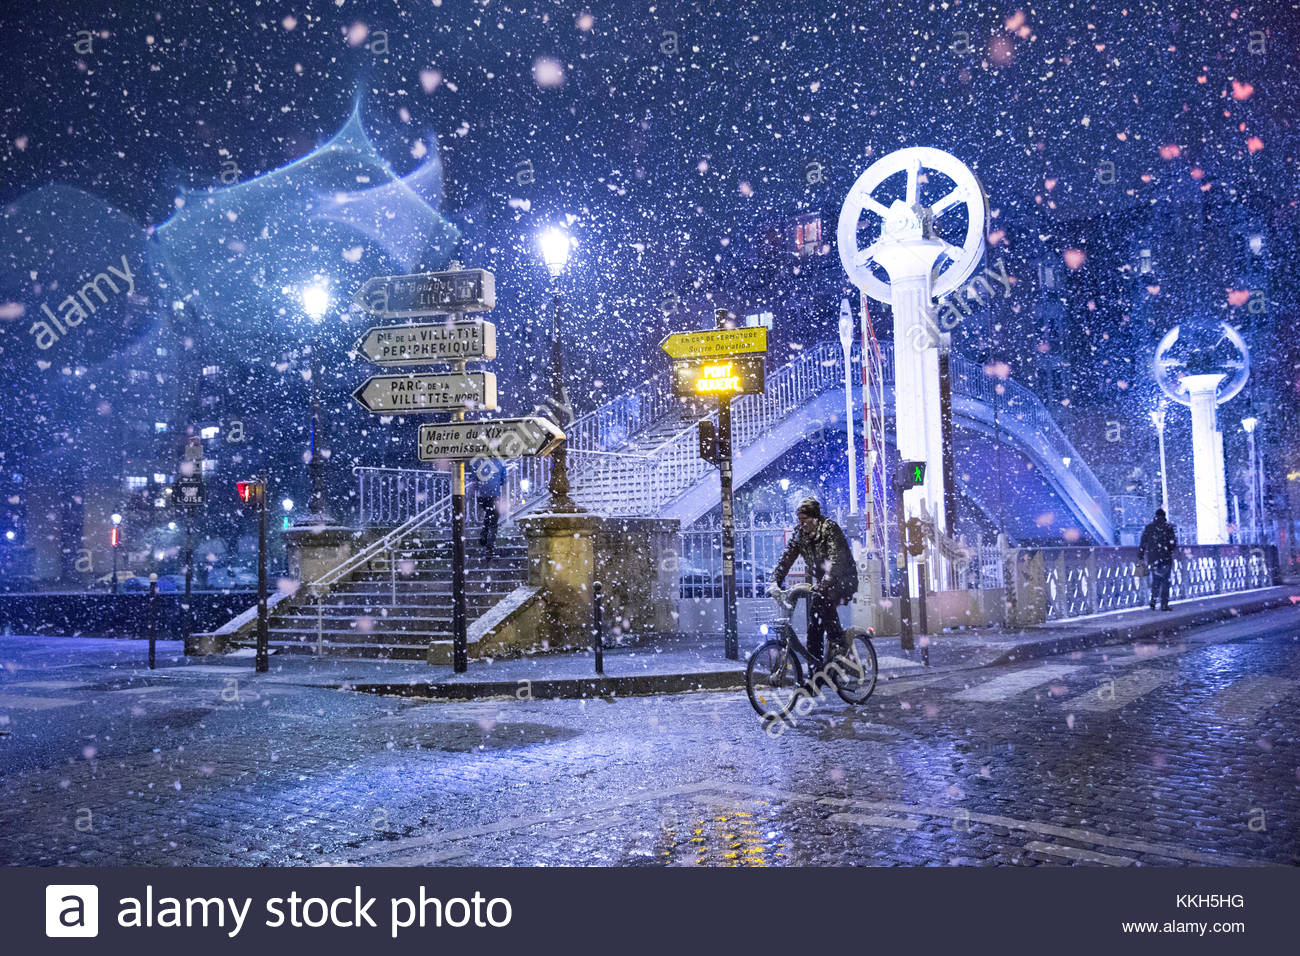 Paris, France. 30th Nov, 2017. A person cycles on the streets of Paris, France on November 30, 2017 as the region - Stock Image